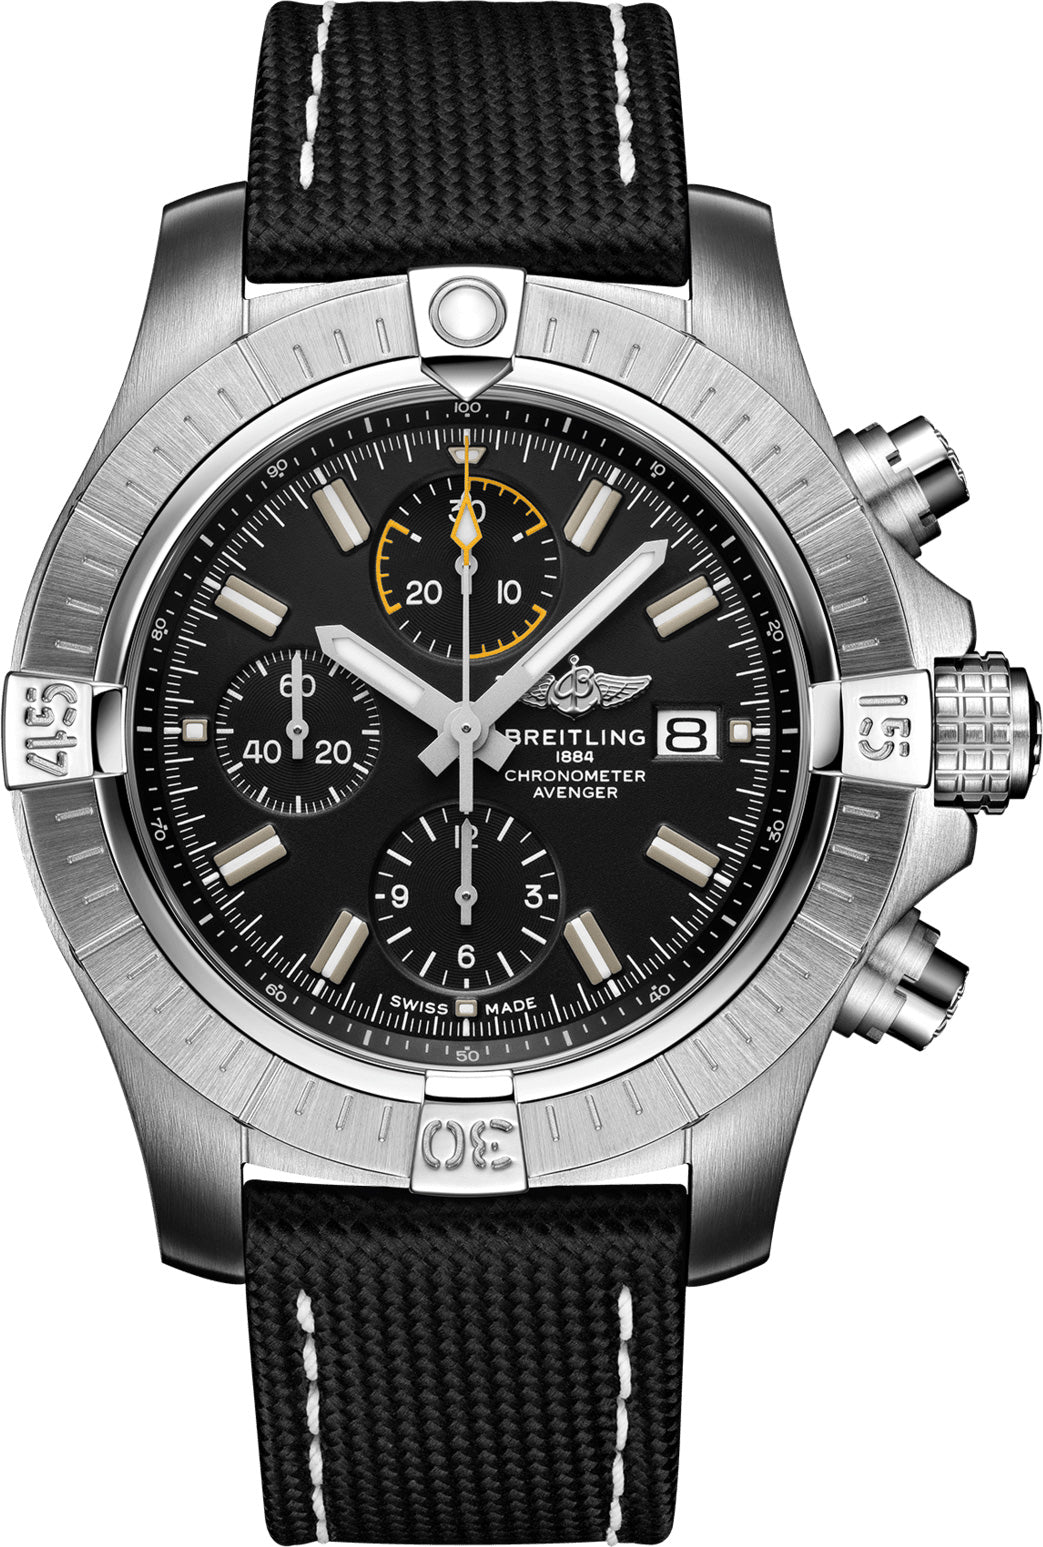 Breitling Watch Avenger Chronograph 45 Folding Clasp